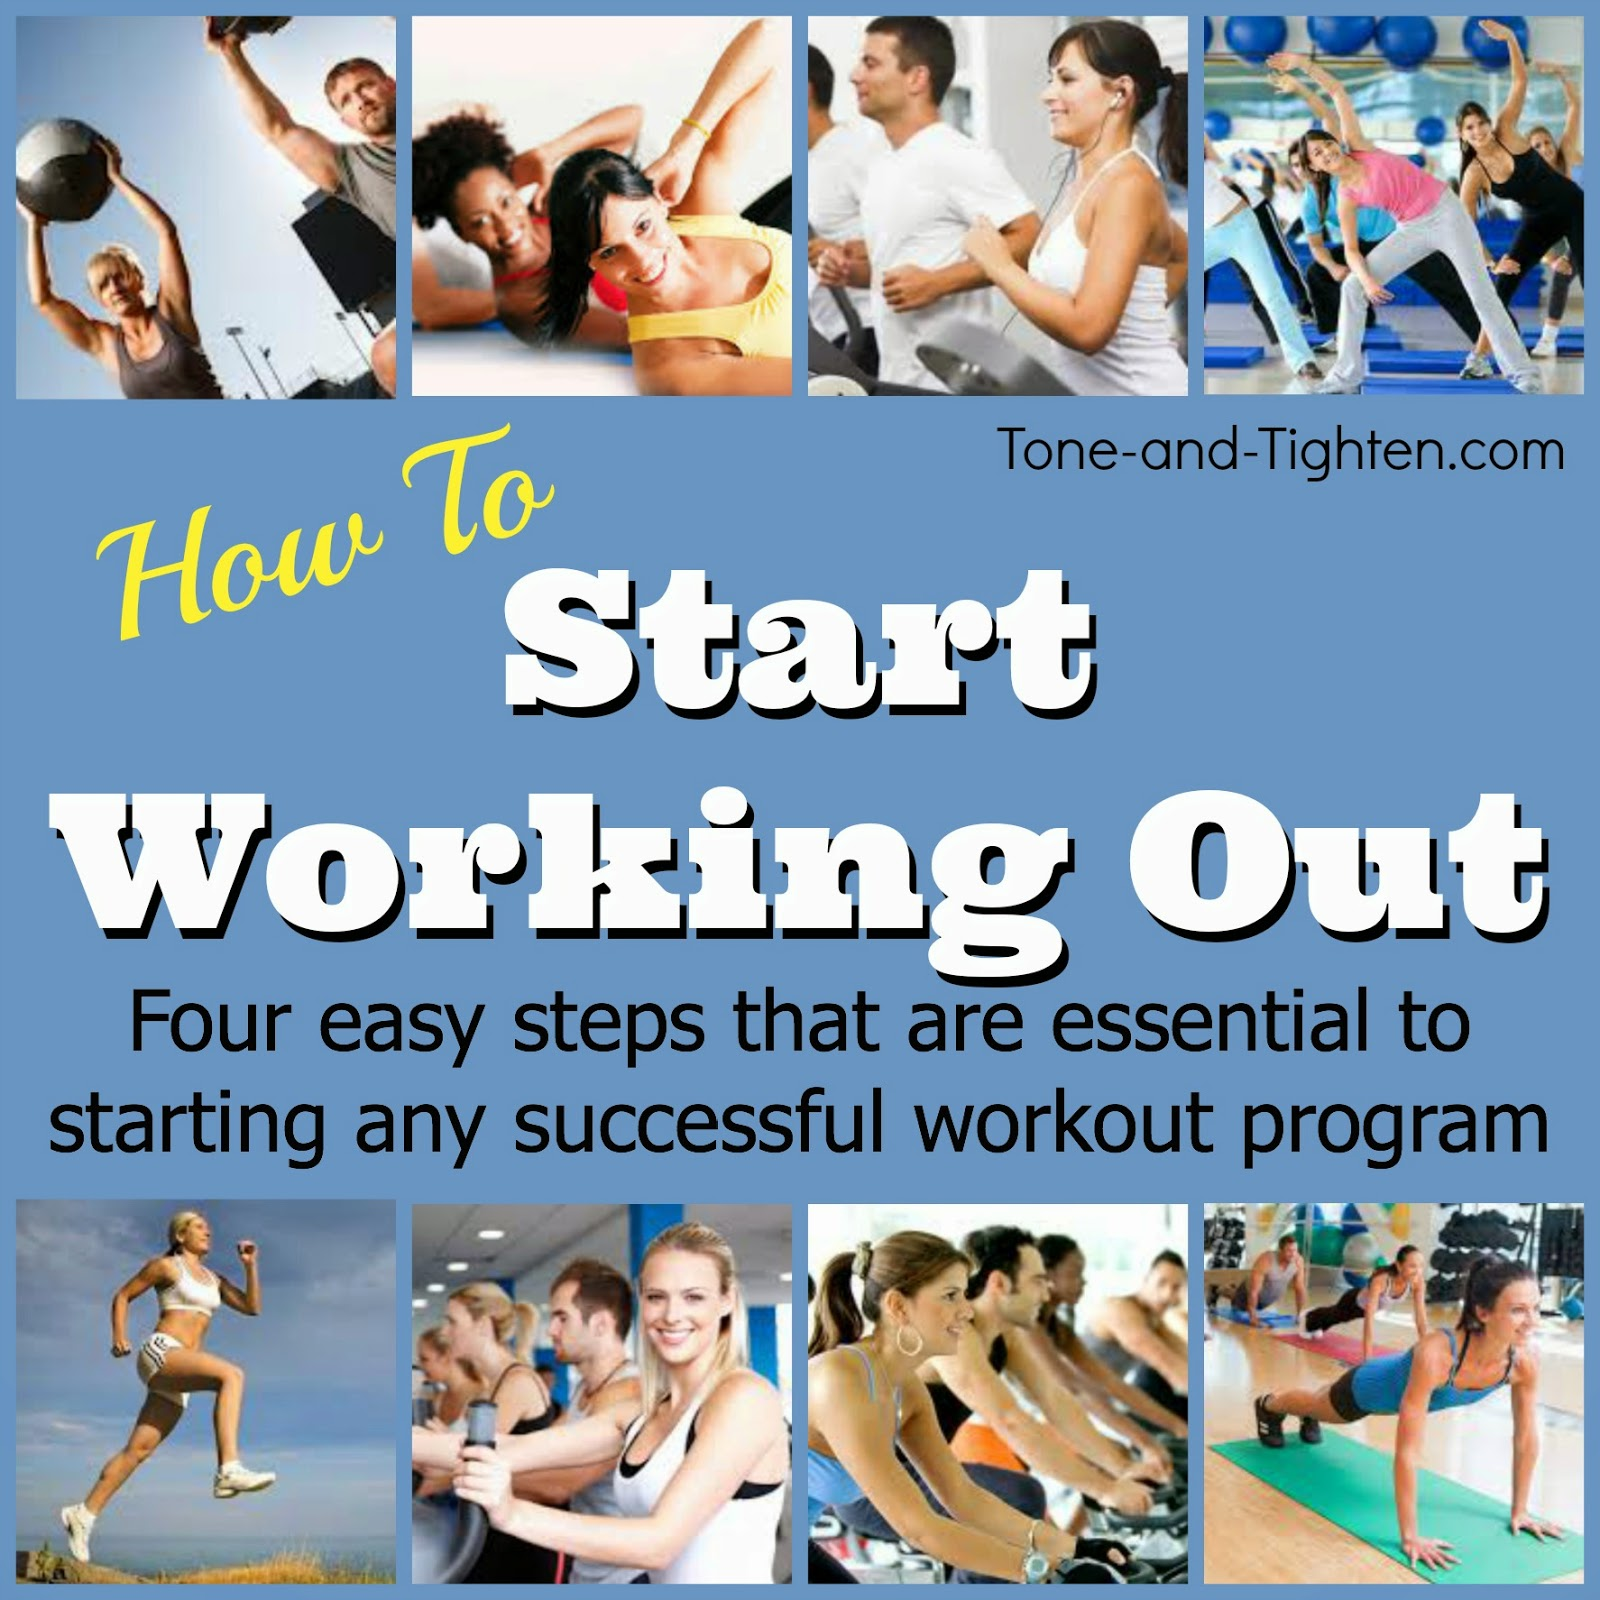 https://tone-and-tighten.com/2014/01/how-to-start-working-out.html